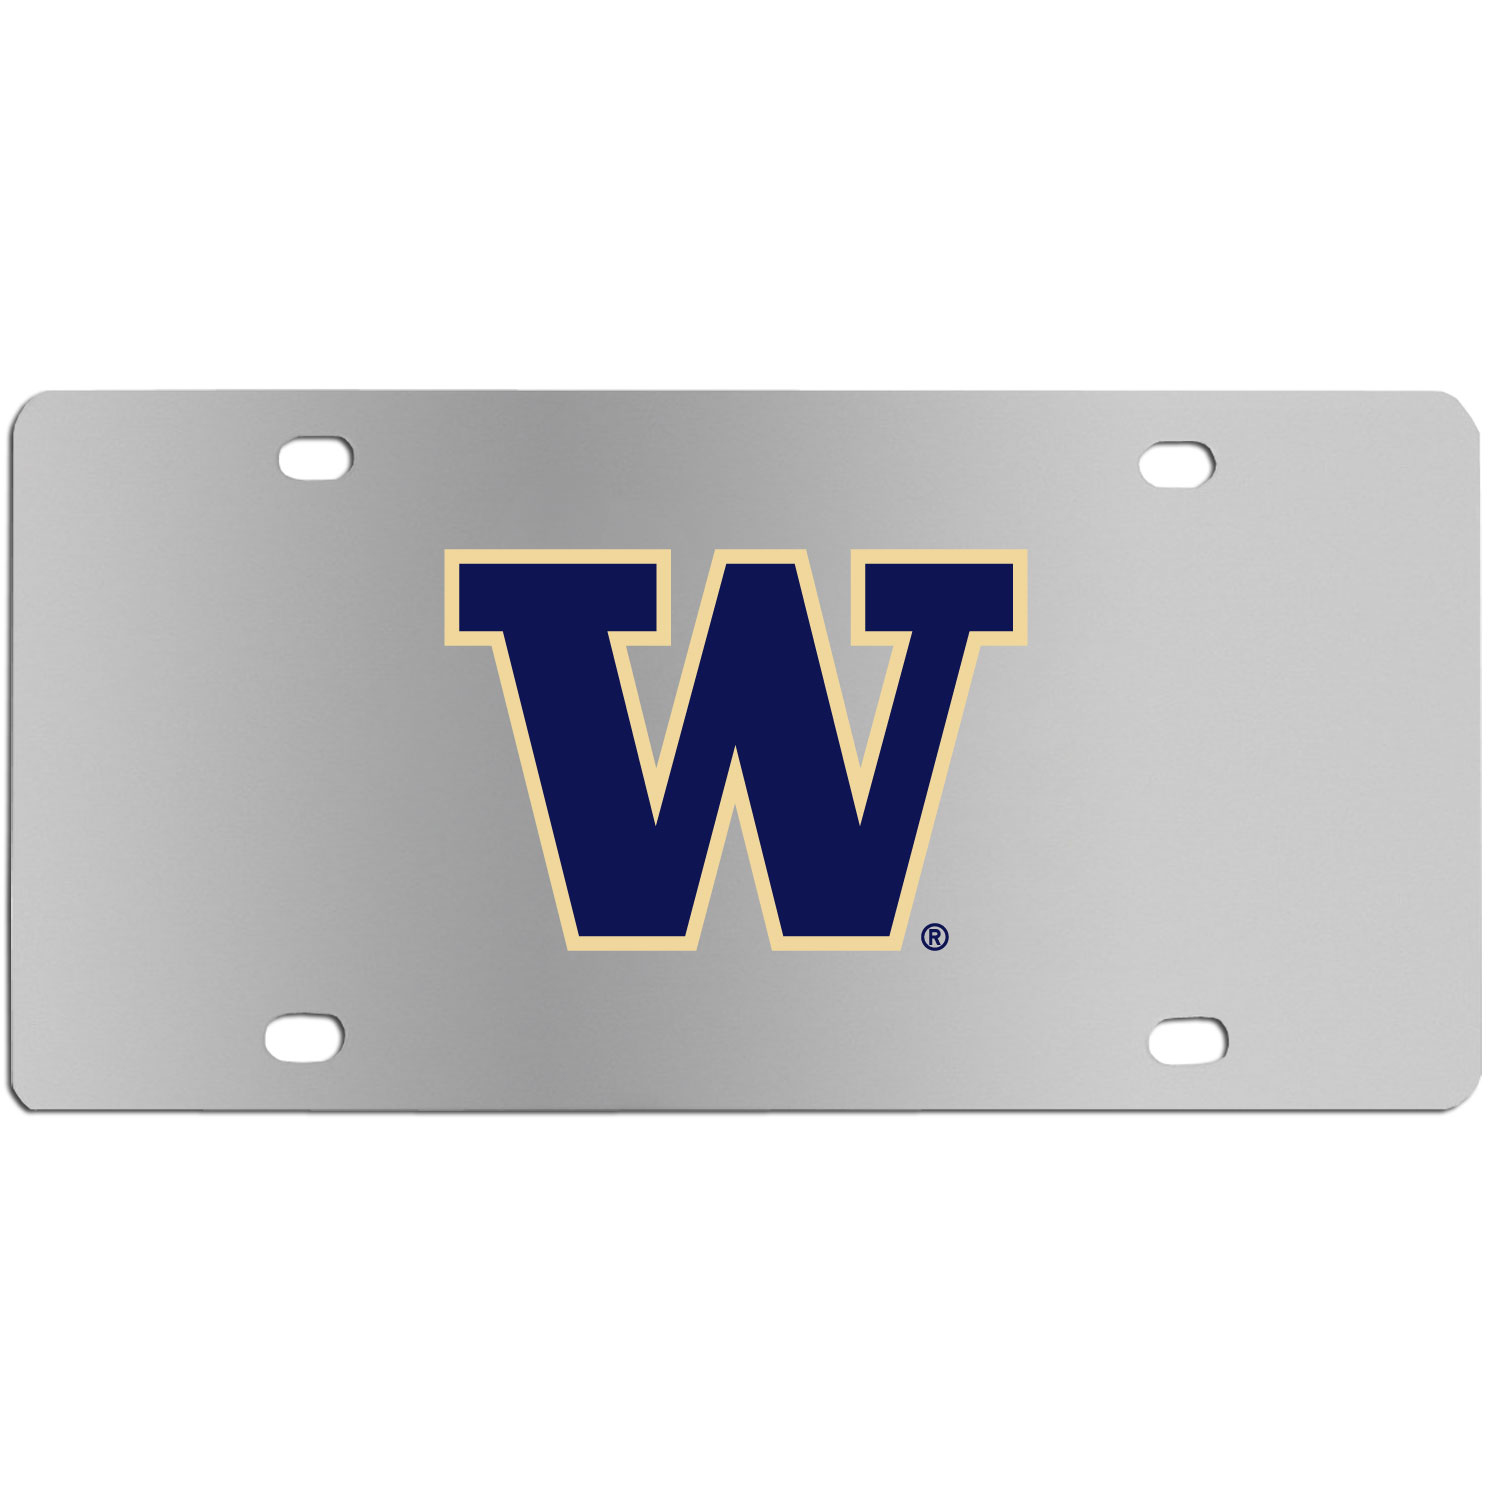 Washington Huskies Steel License Plate Wall Plaque - This high-quality stainless steel license plate features a detailed team logo on a the polished surface. The attractive plate is perfect for wall mounting in your home or office to become the perfect die-hard Washington Huskies fan decor.